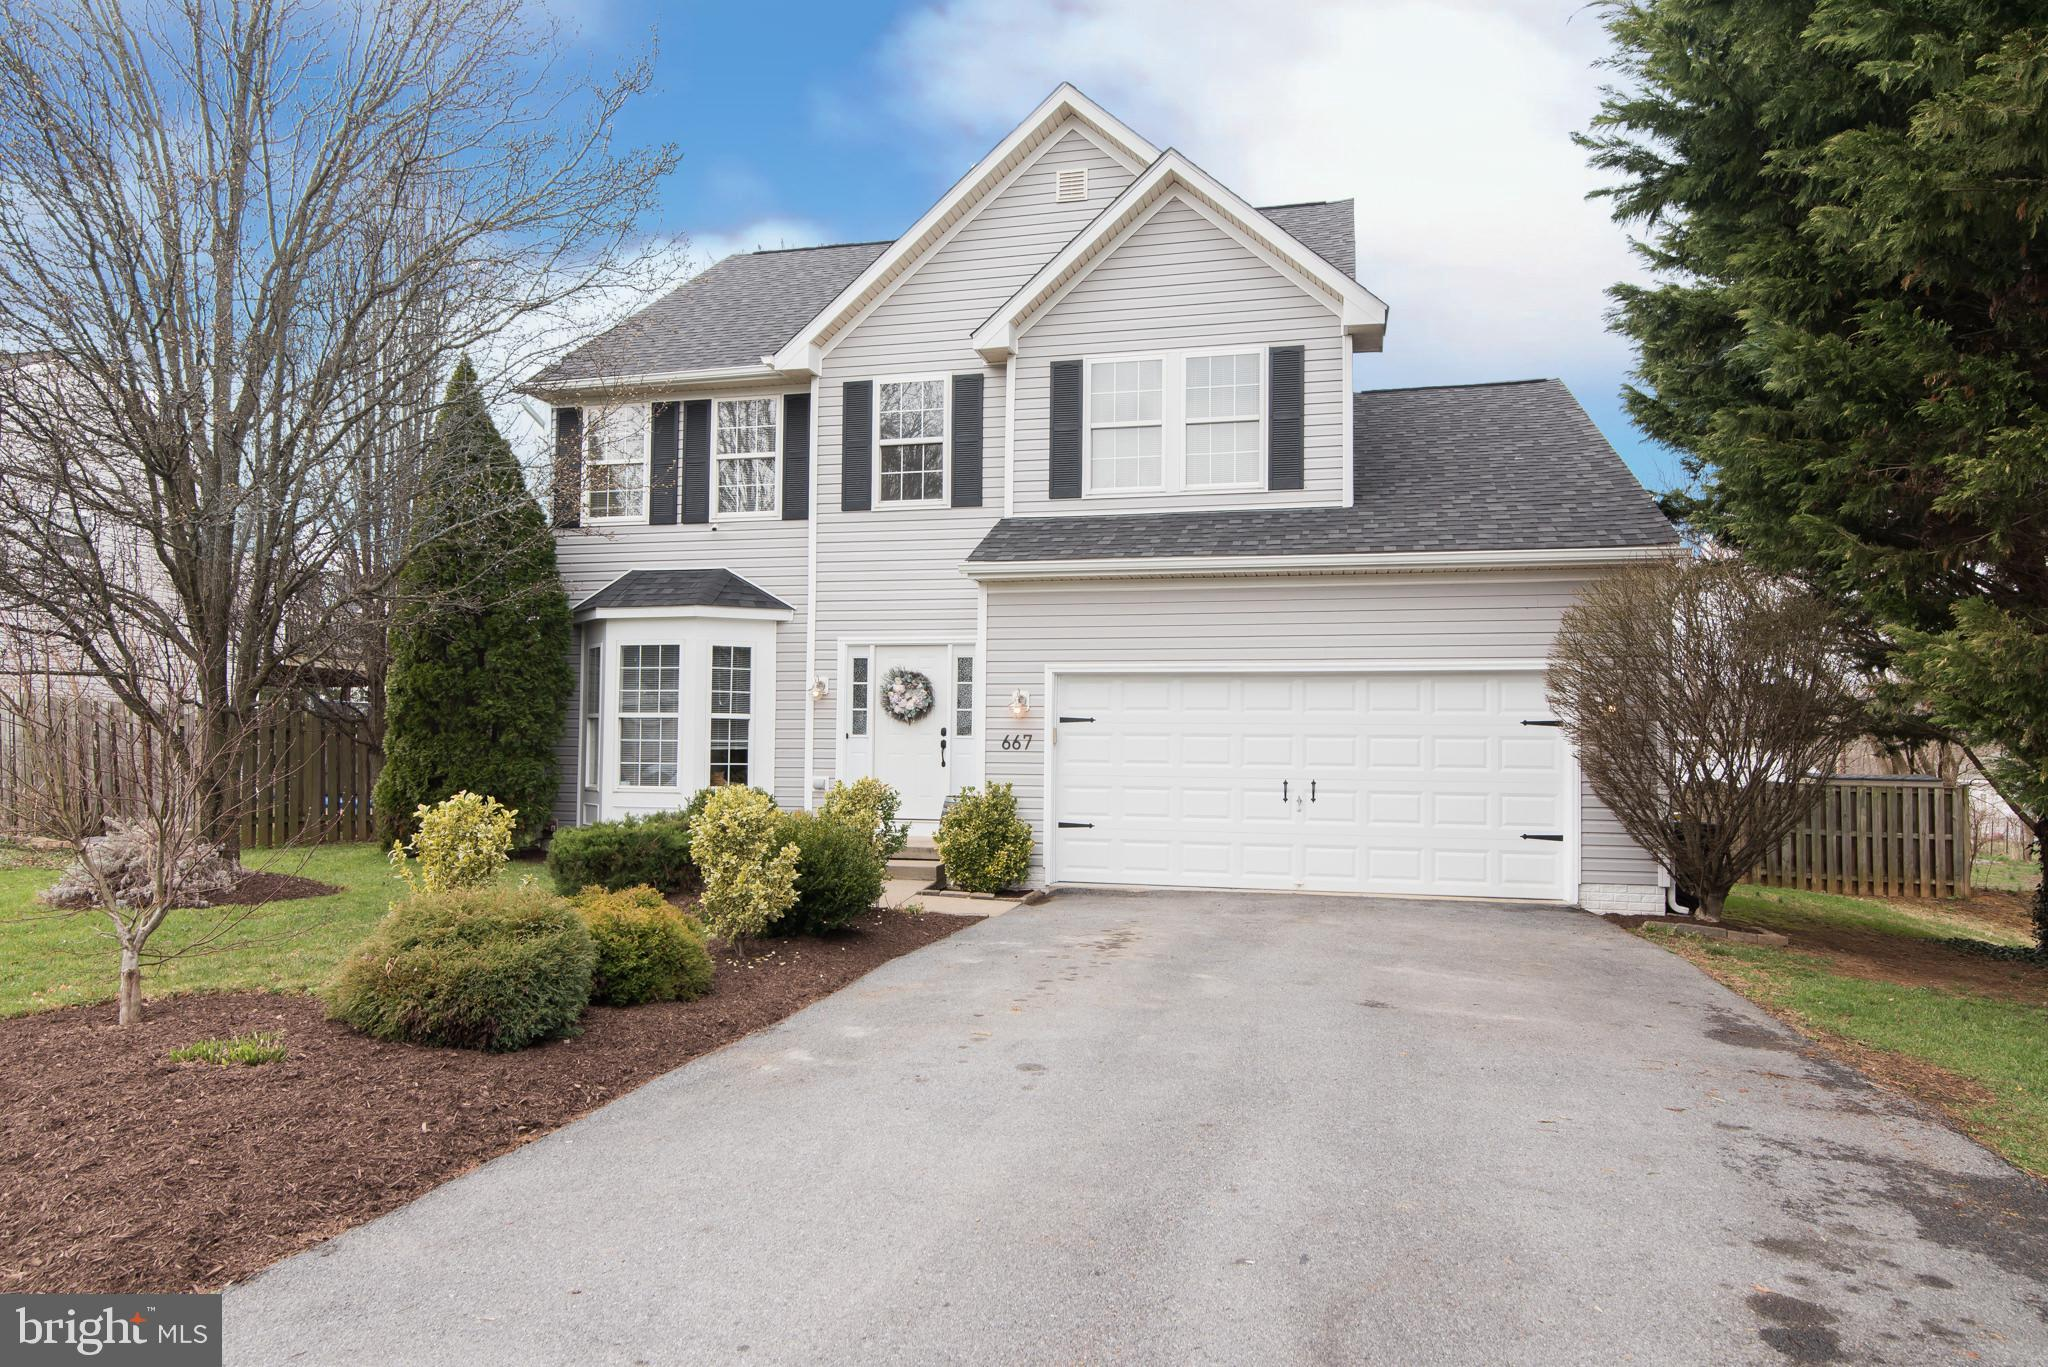 667 Crosswinds Dr, Charles Town, WV, 25414